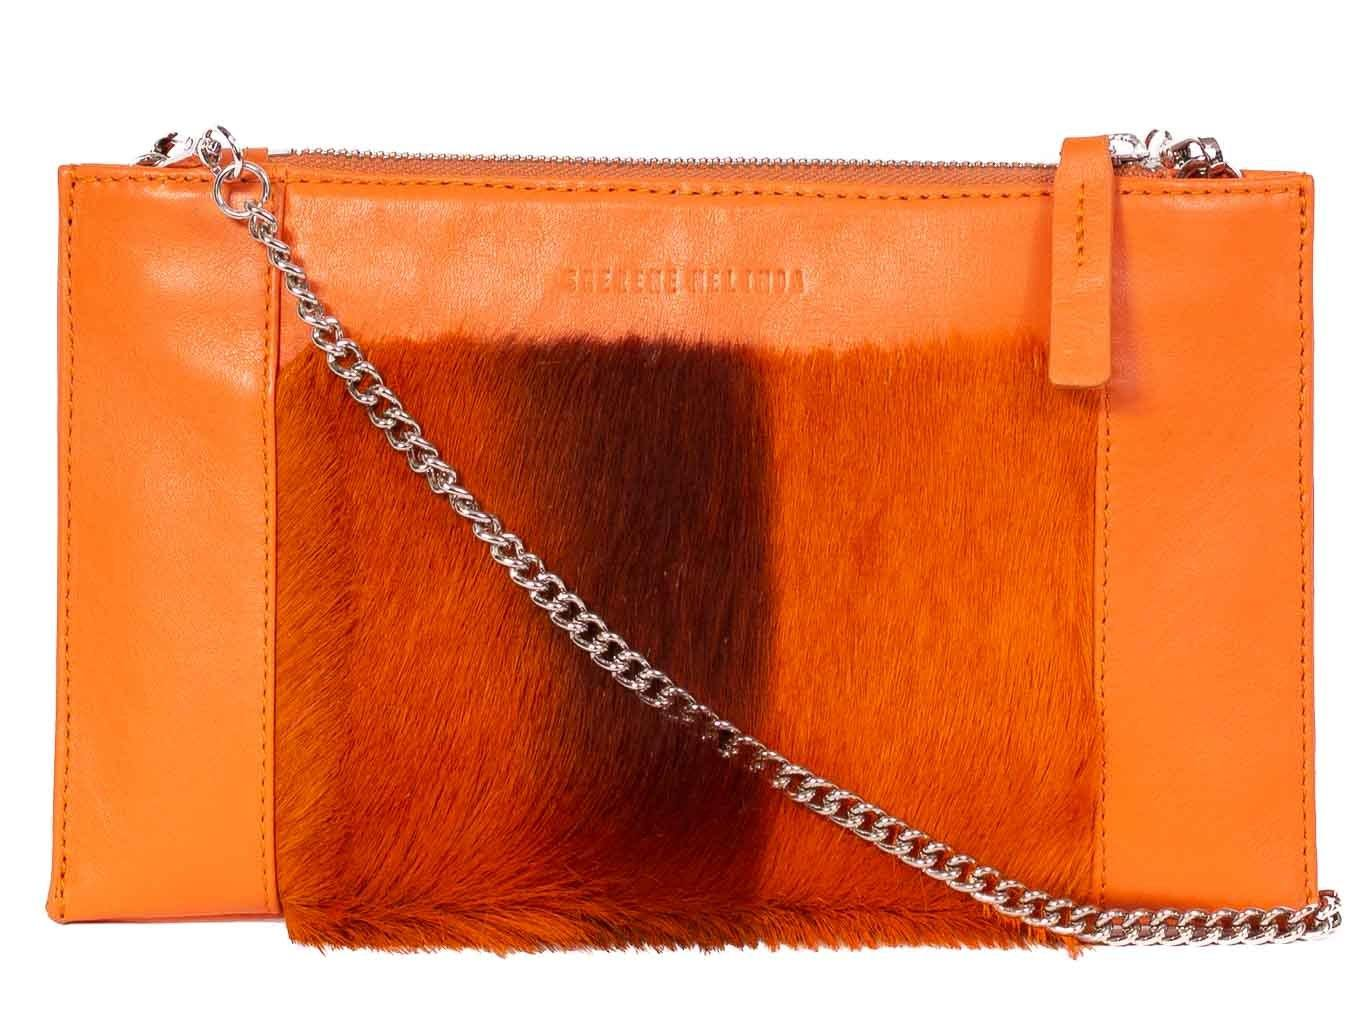 Clutch Springbok Handbag in Orange with a stripe feature by Sherene Melinda front strap